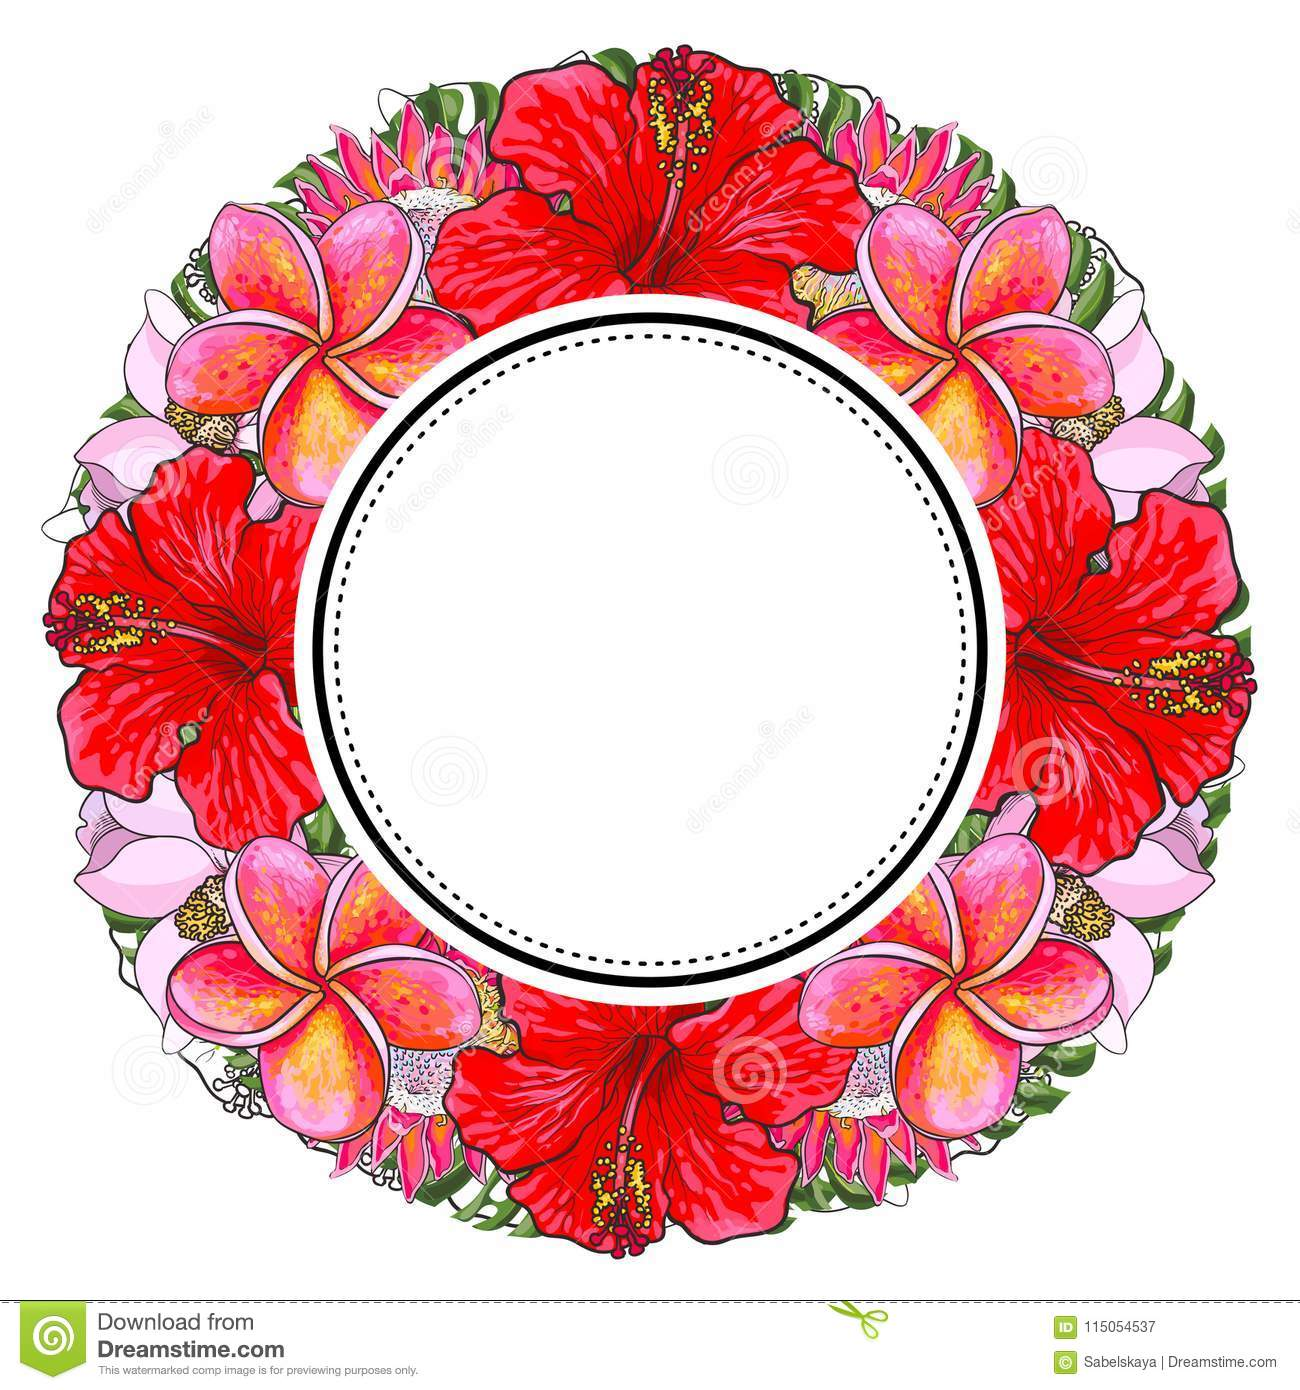 Tropical flowers and palm leaves in floral composition in round form with sticker on top